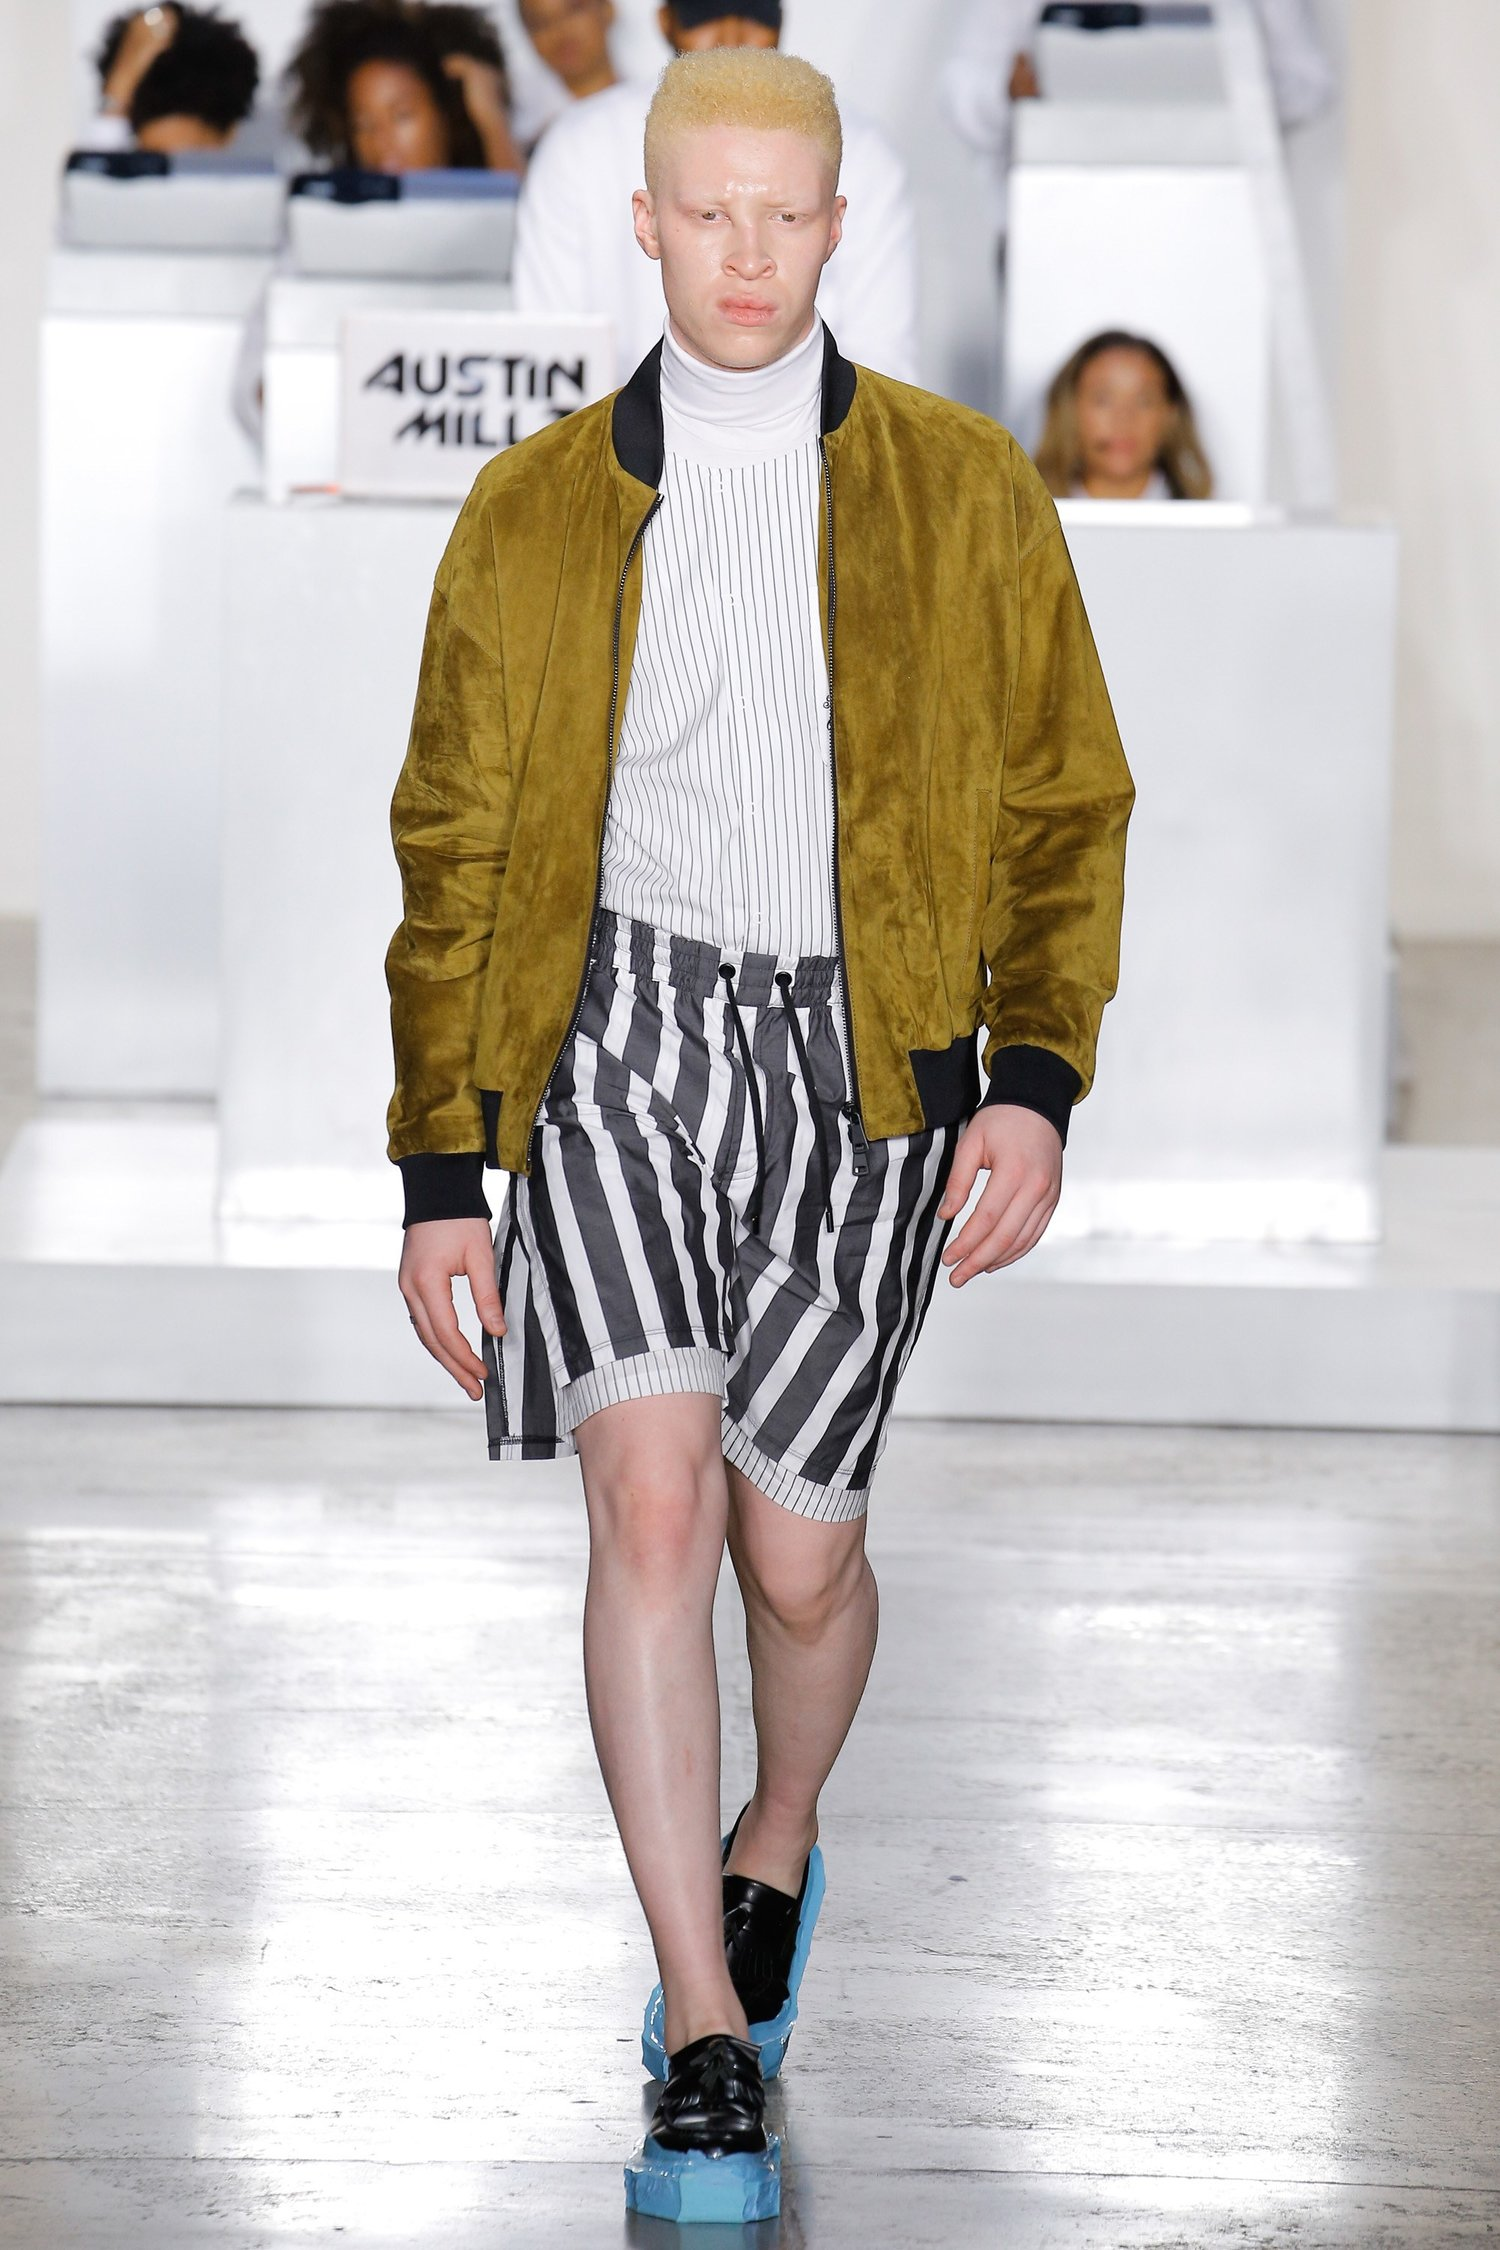 4835c3f5 ... the fashion senses of evil Wall Street fuckfaces like Patrick Bateman,  Bernie Madoff, and Donald Trump in his brand's Spring-Summer 2017 collection .